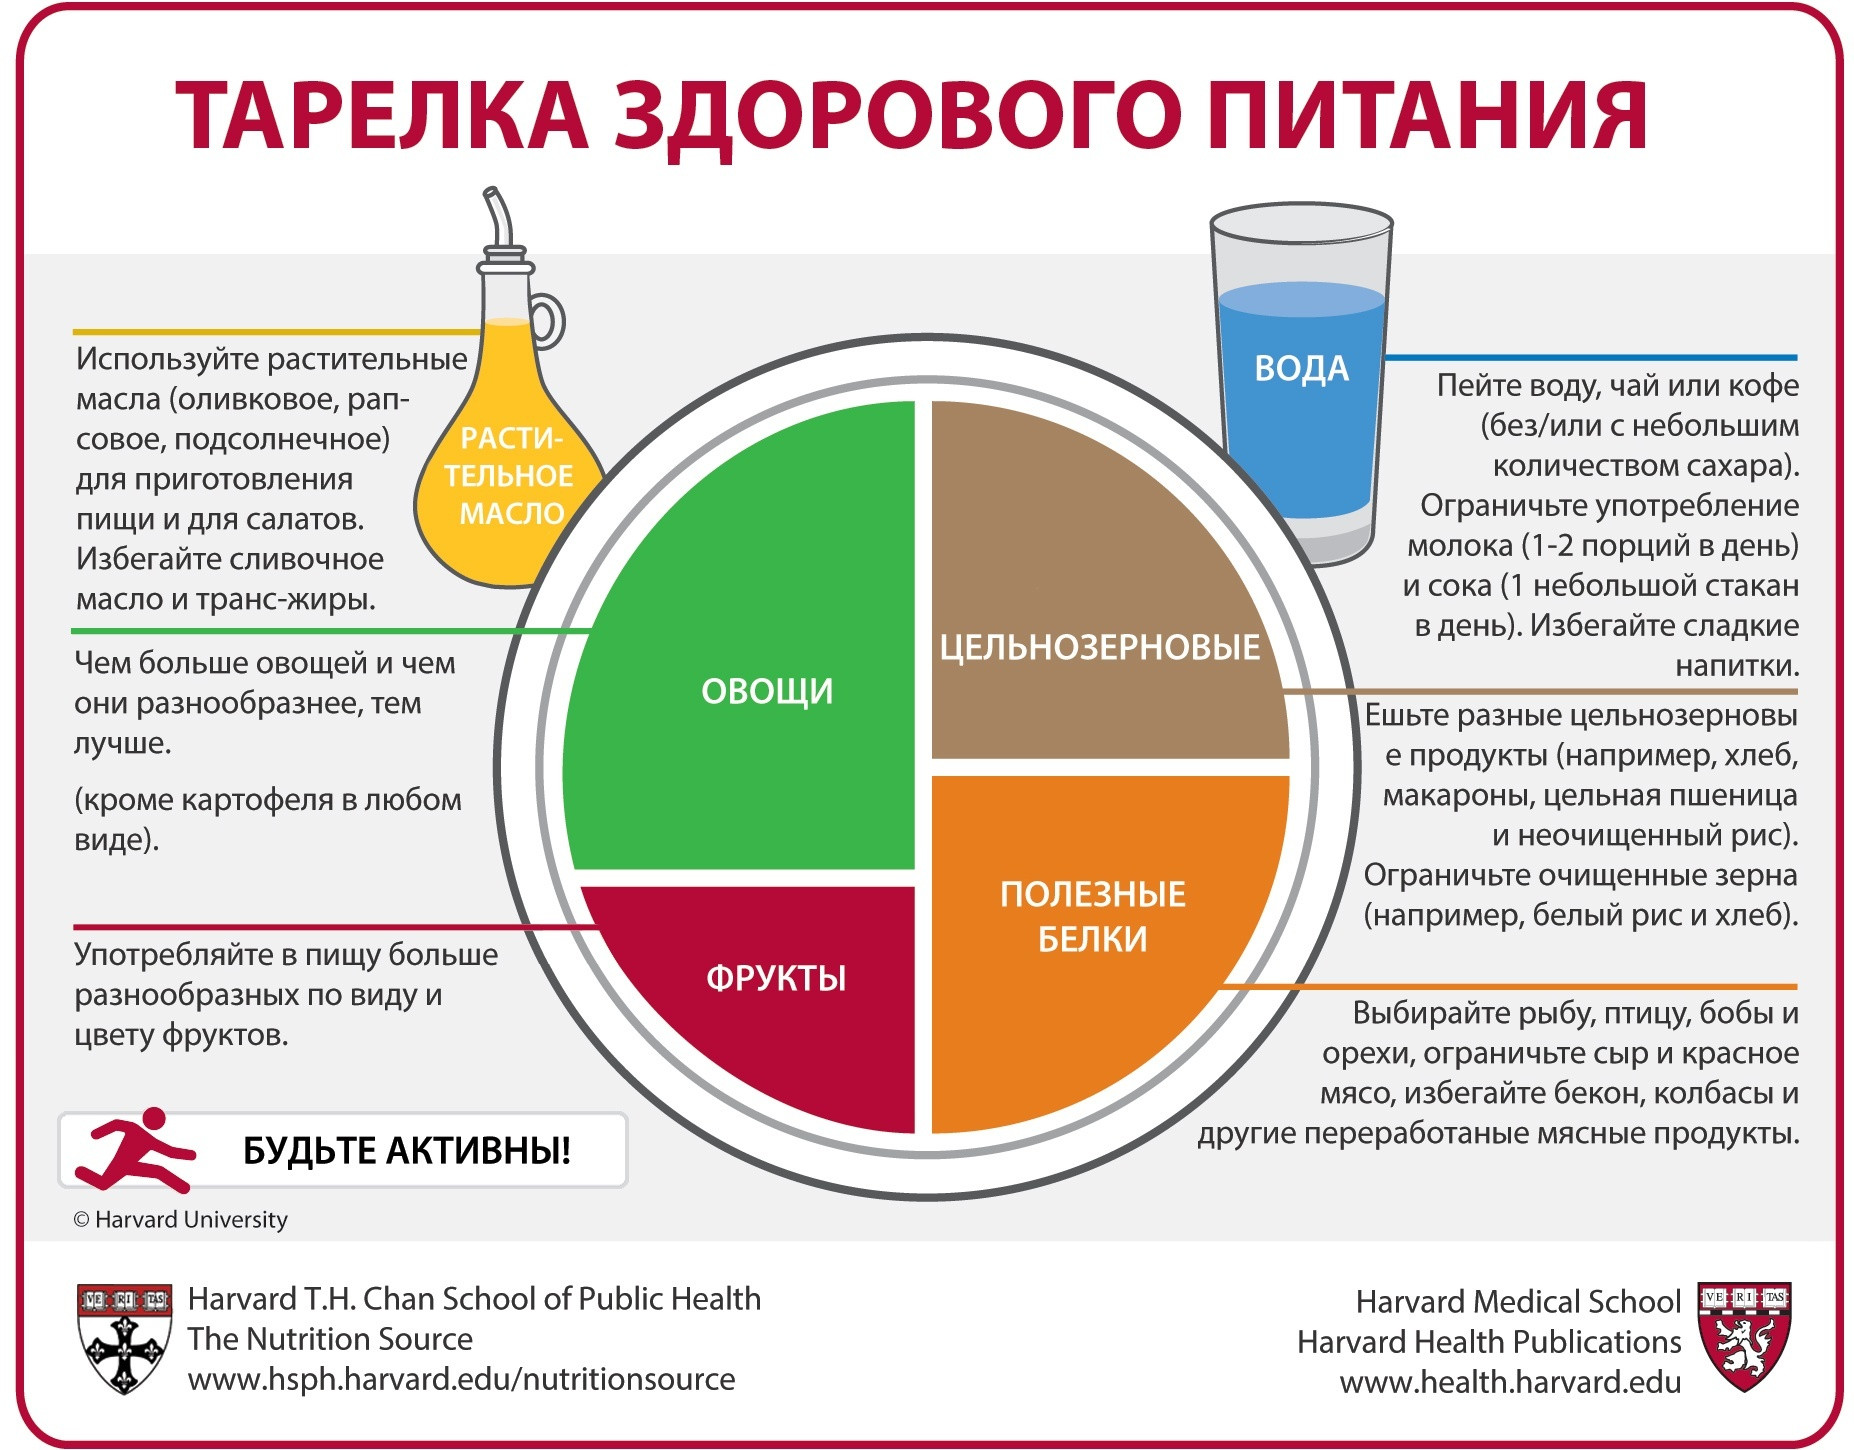 Healthy Eating Plate на русском